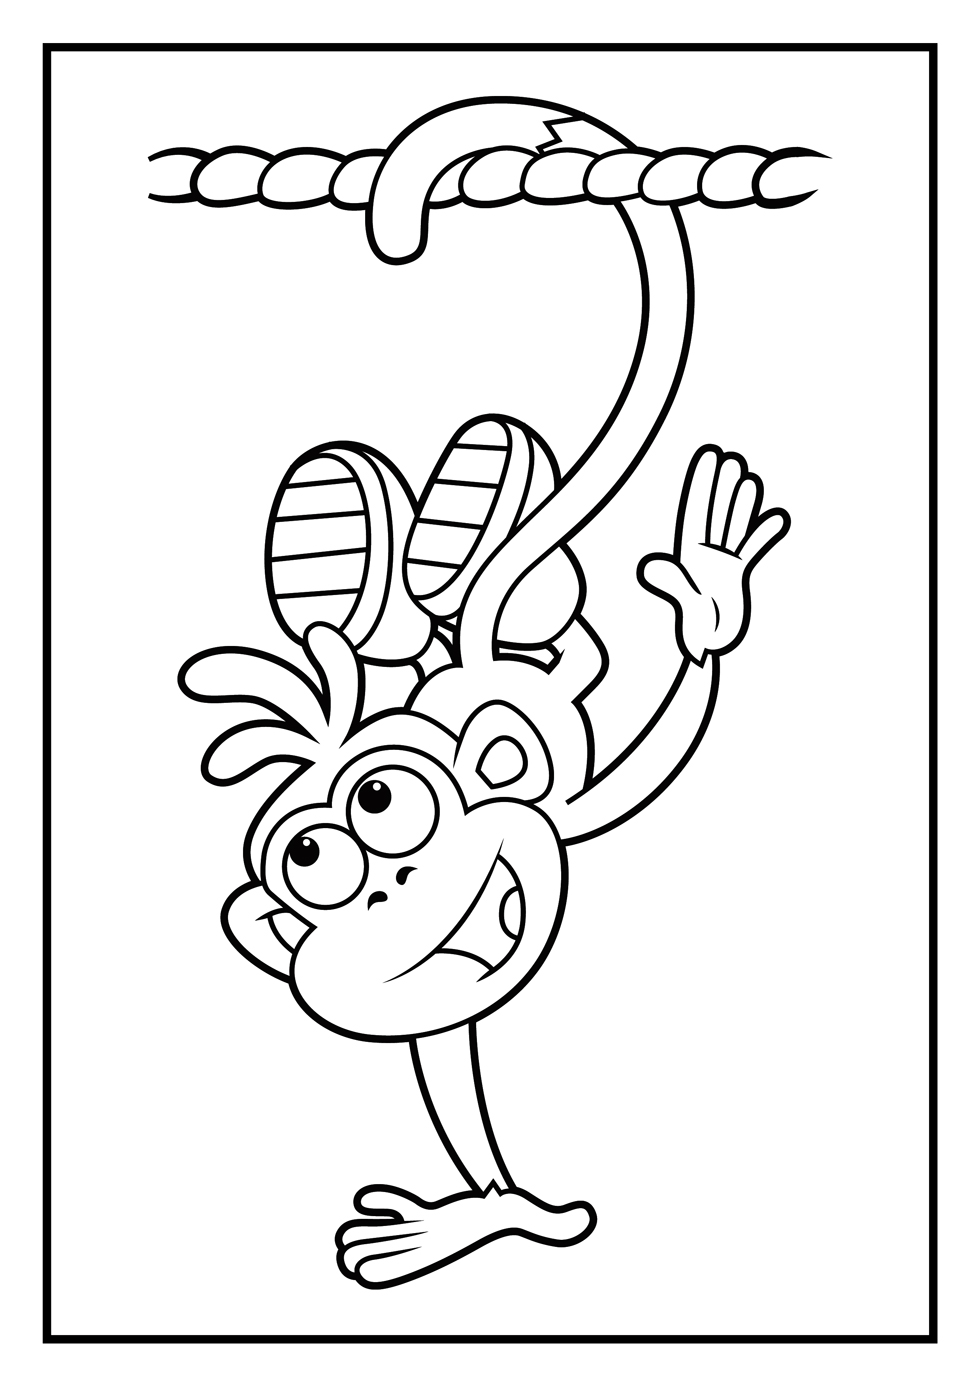 Dora Coloring Pages | Diego Coloring Pages